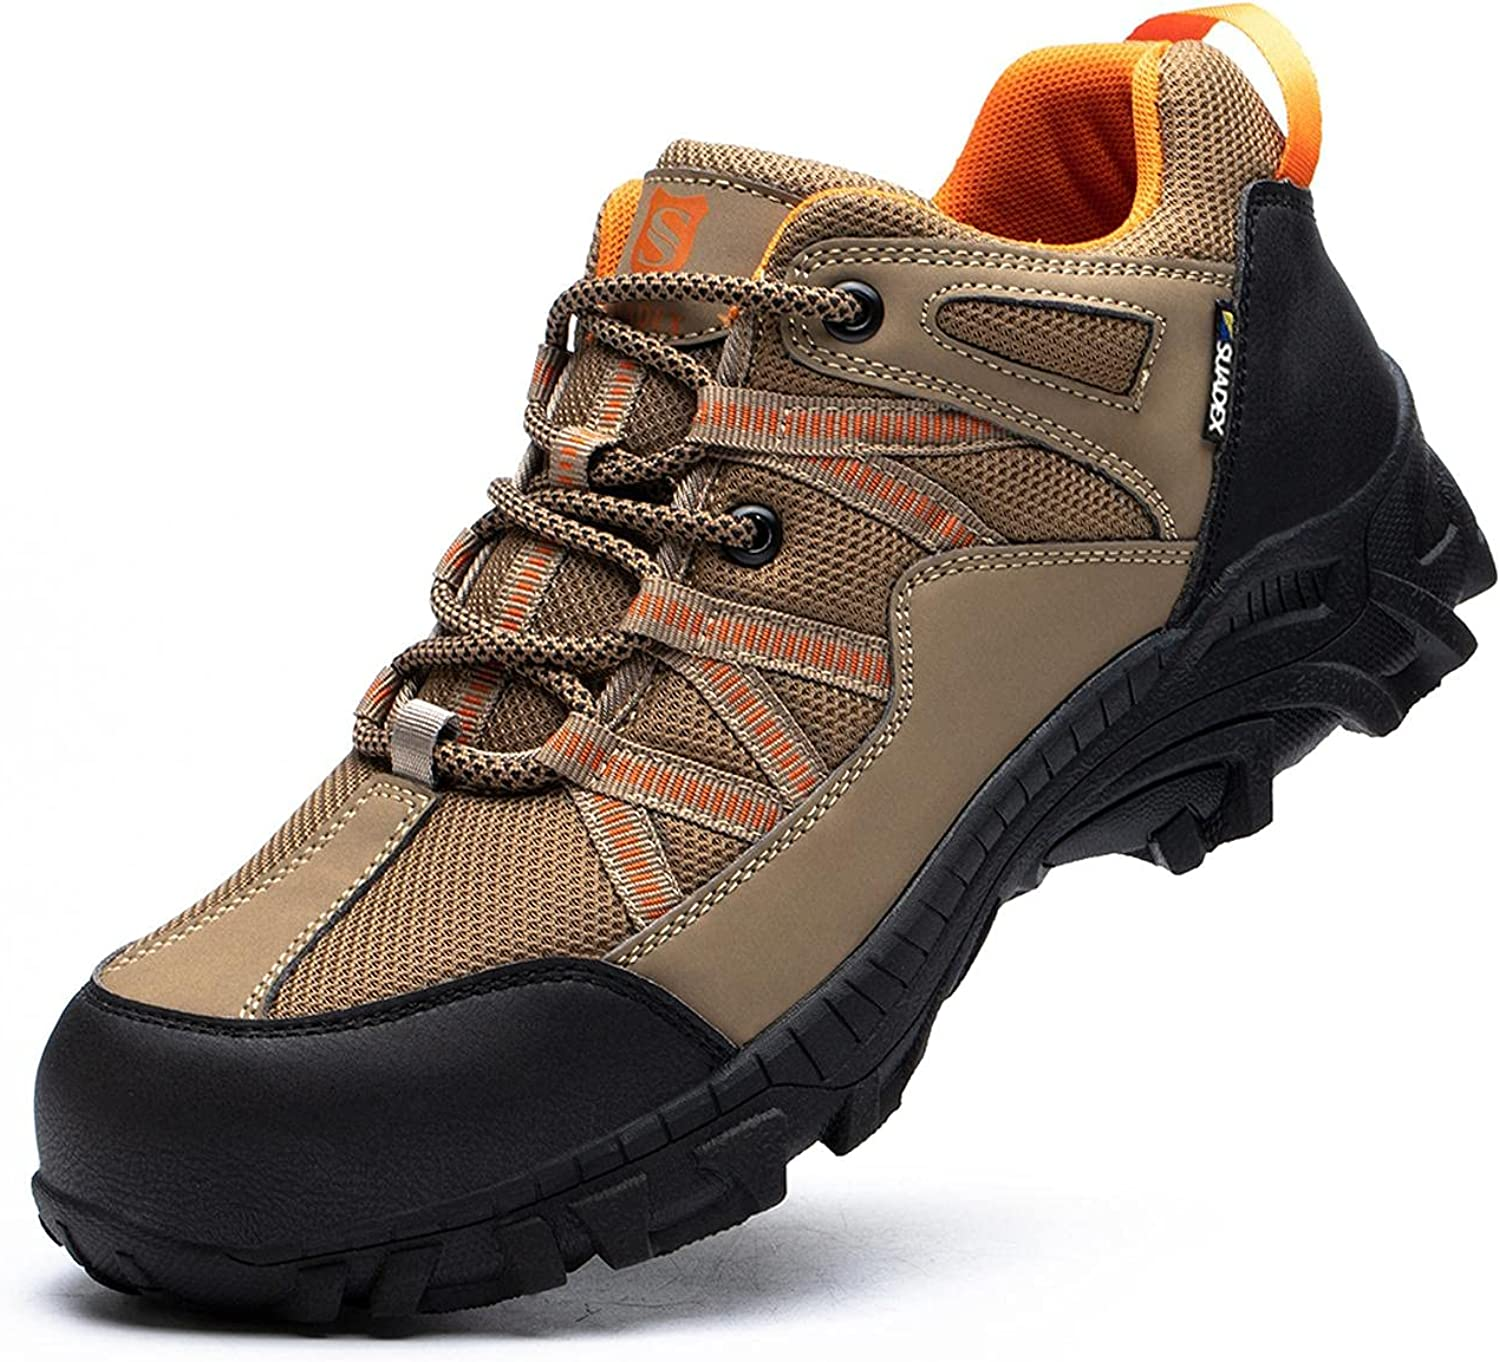 SUADEX Indestructible Steel Toe Shoes for Men Bombing free Popular popular shipping Women Construction